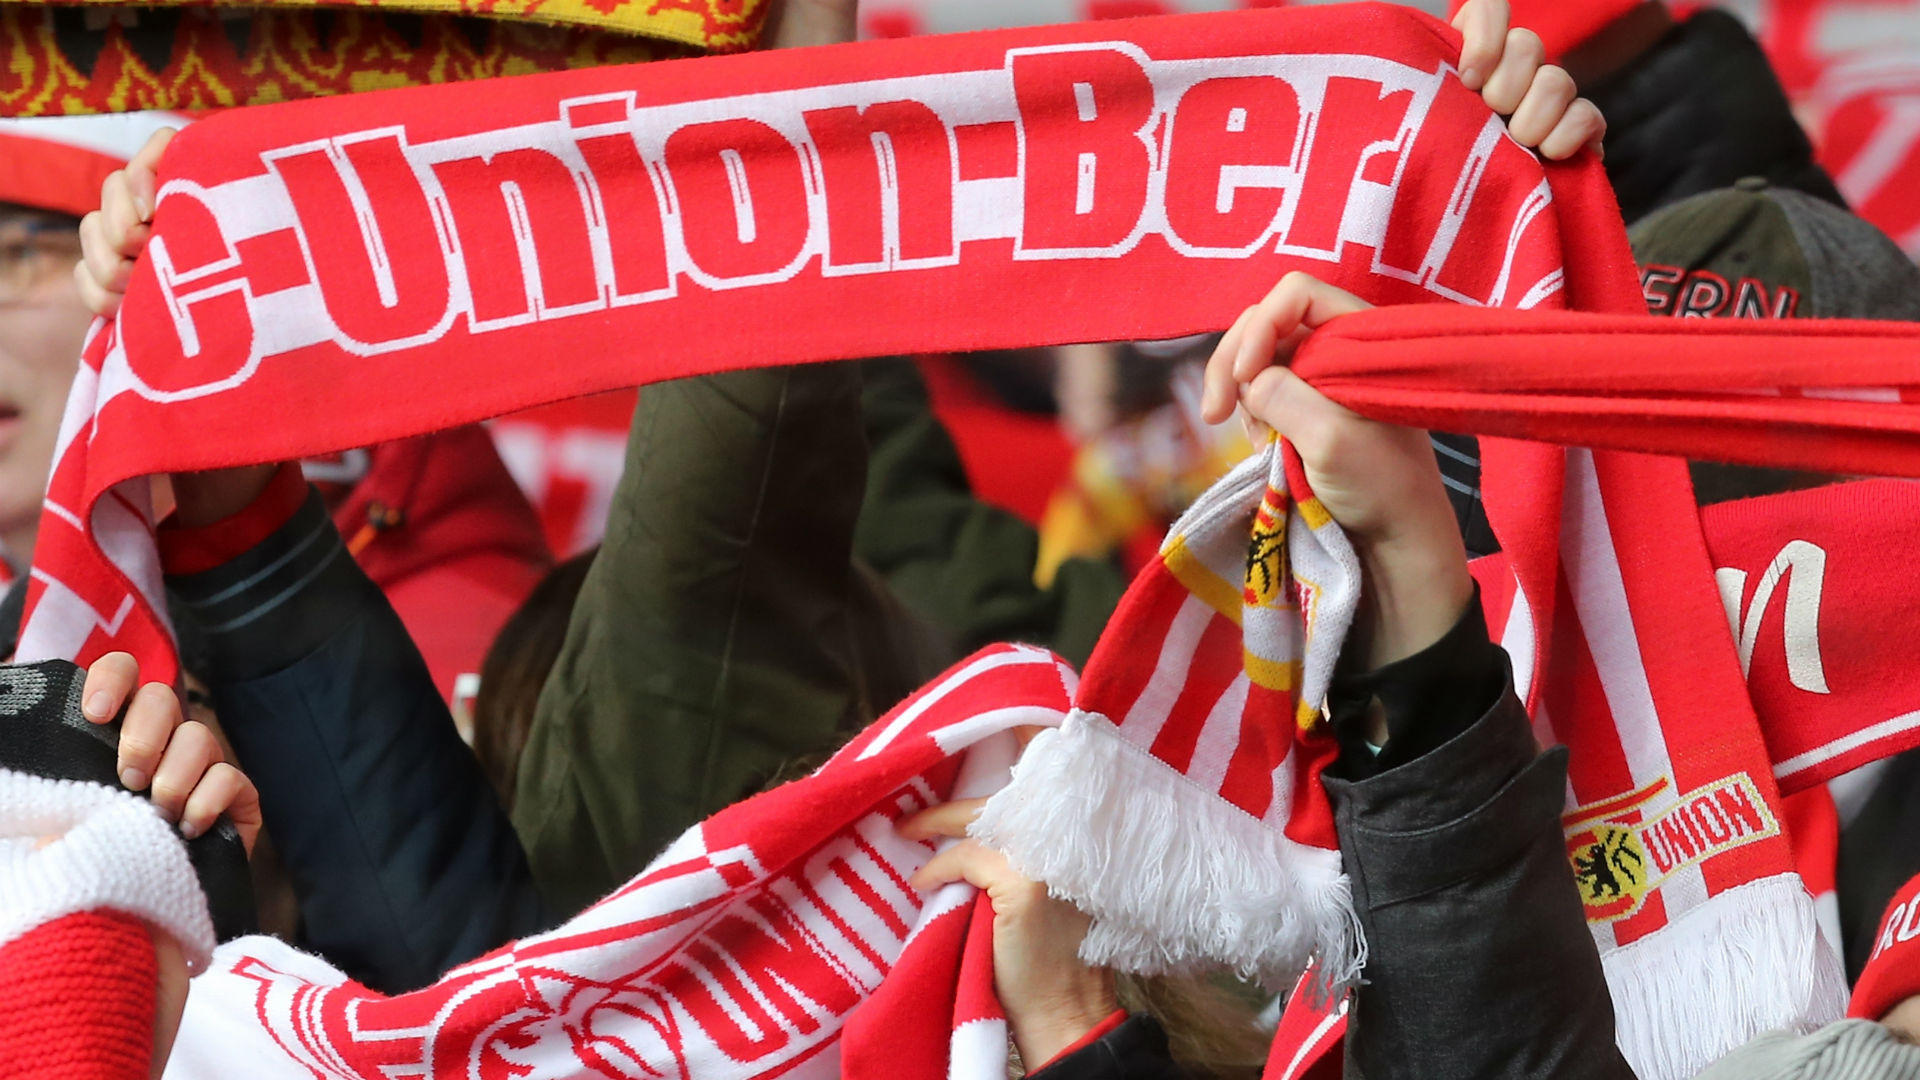 Coronavirus: Union Berlin players waive salaries to aid Bundesliga club